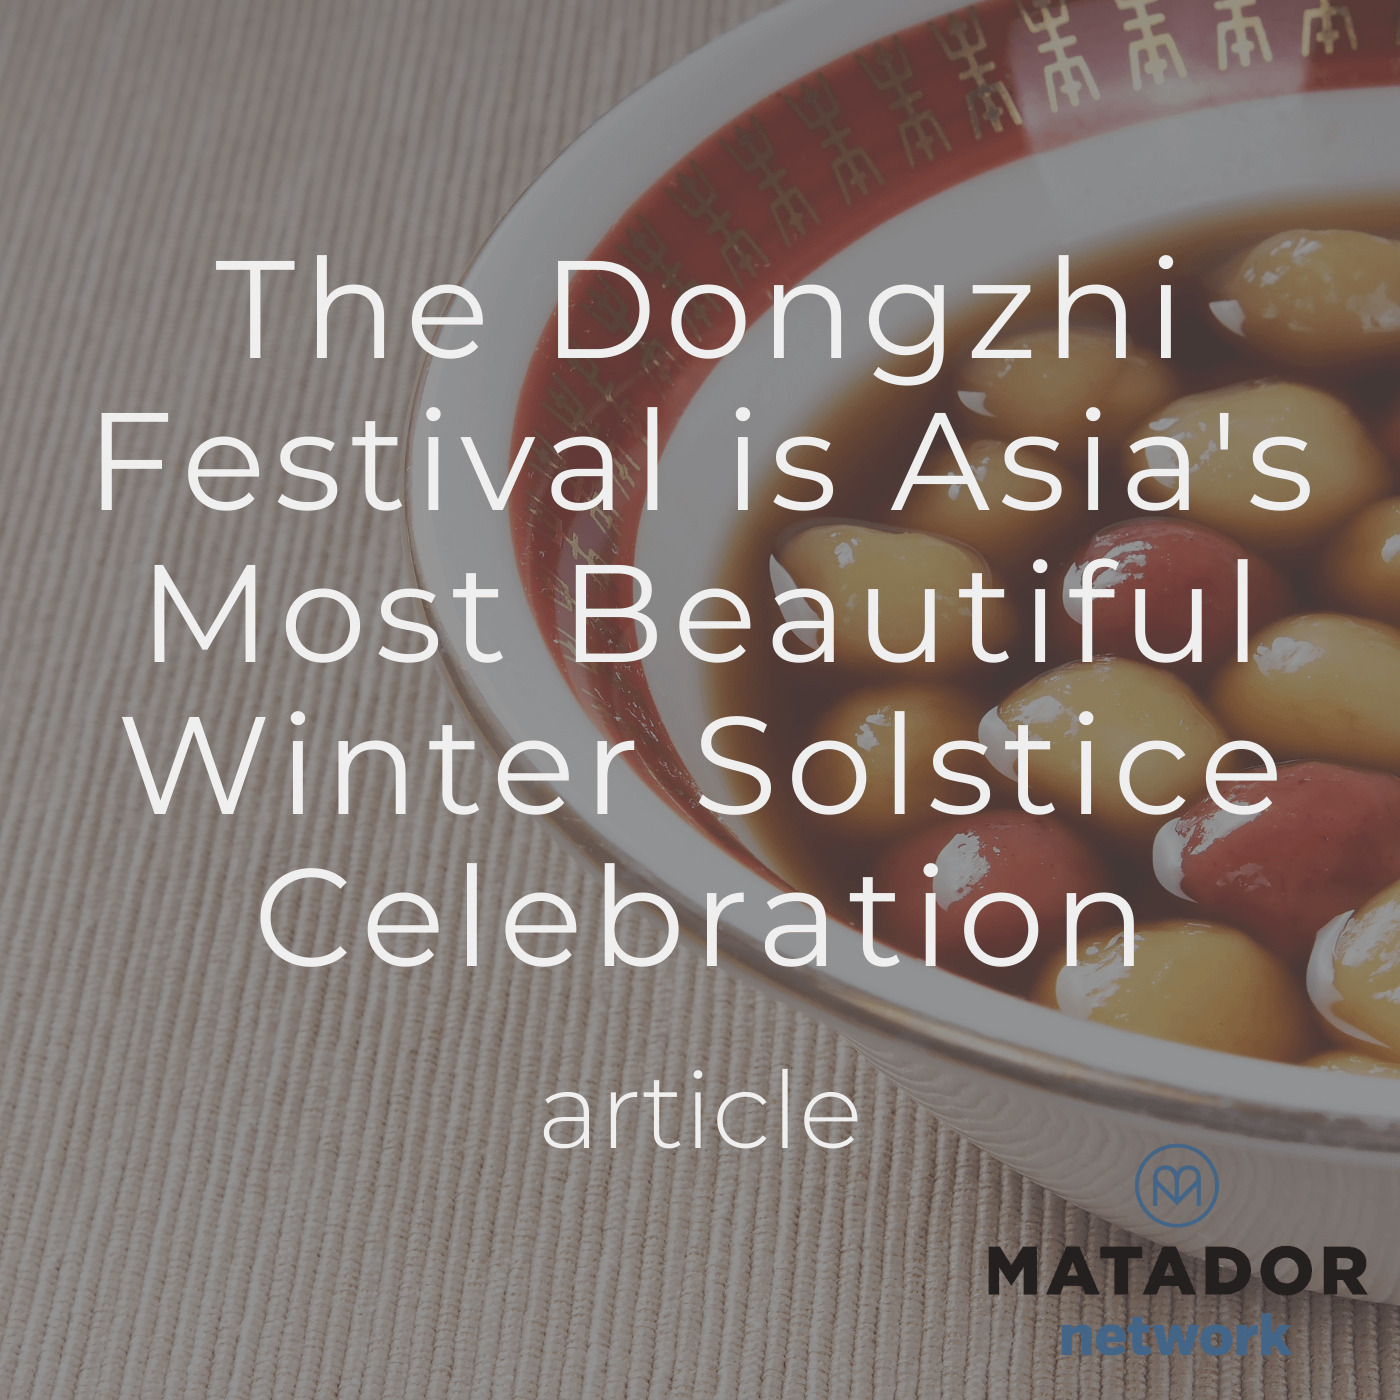 The Dongzhi Festival is Asia's Most Beautiful Winter Solstice Celebration